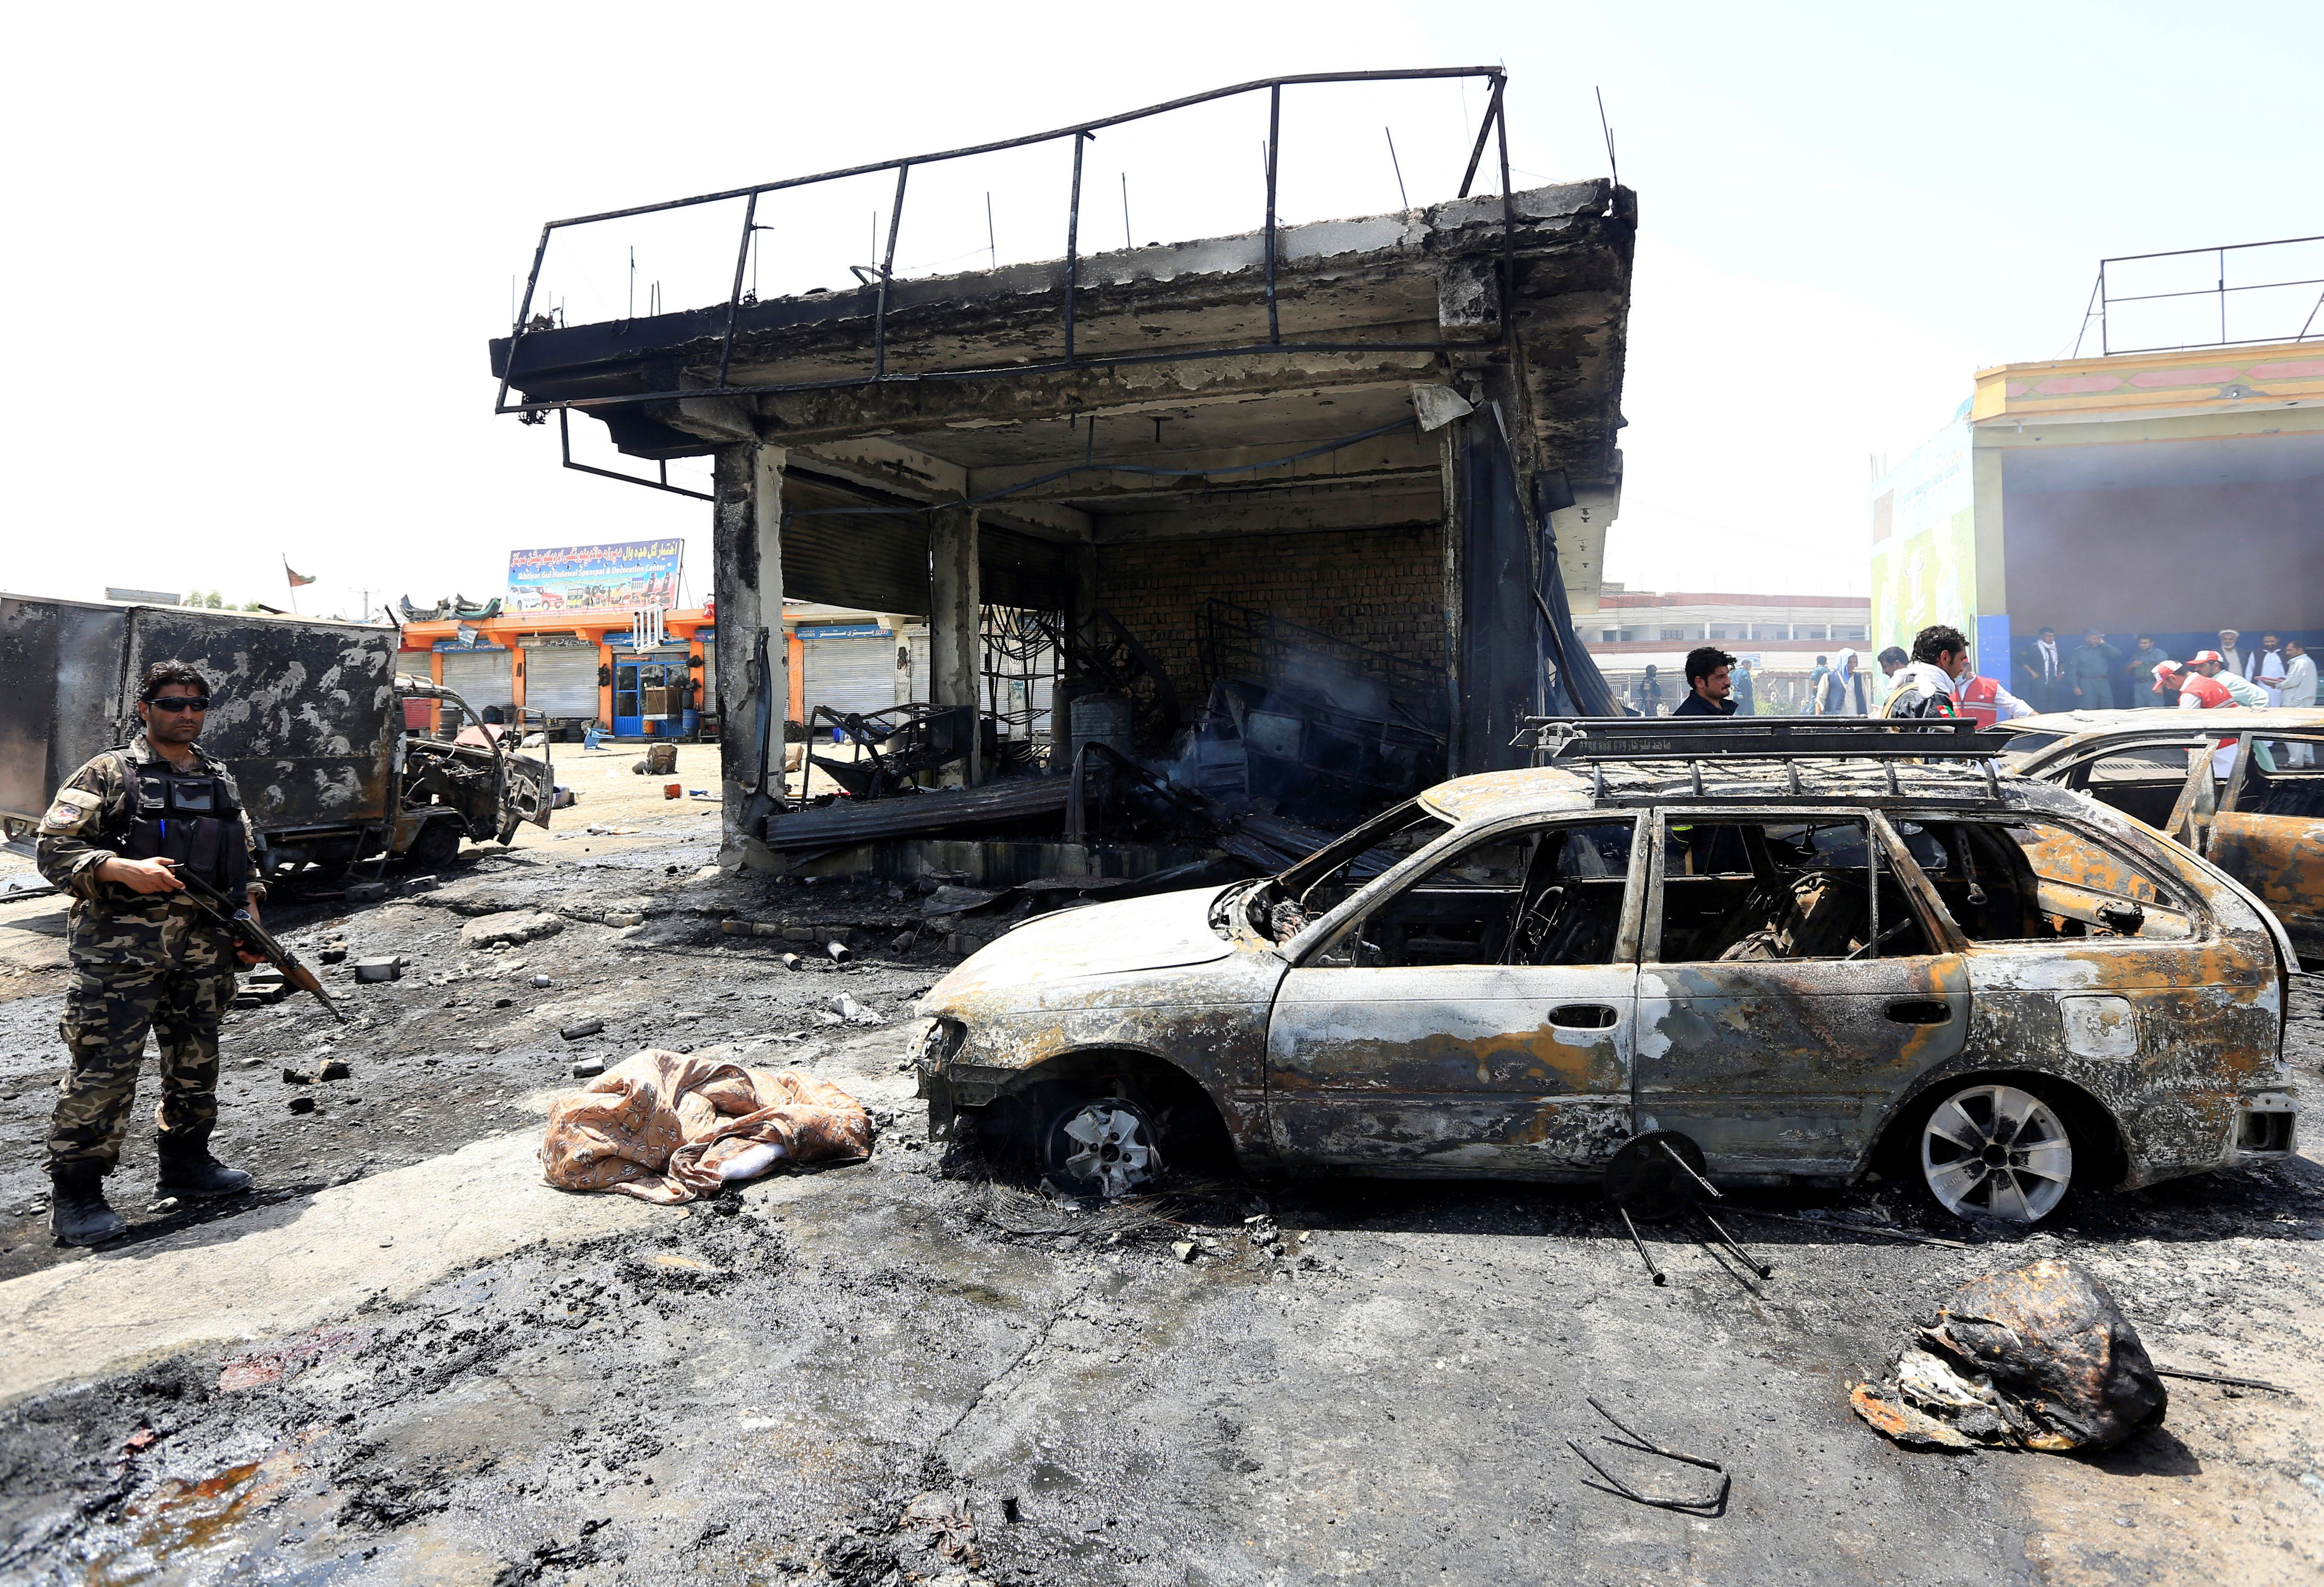 Afghan security forces inspect the site of a suicide attack in Jalalabad, Afghanistanon Tuesday.